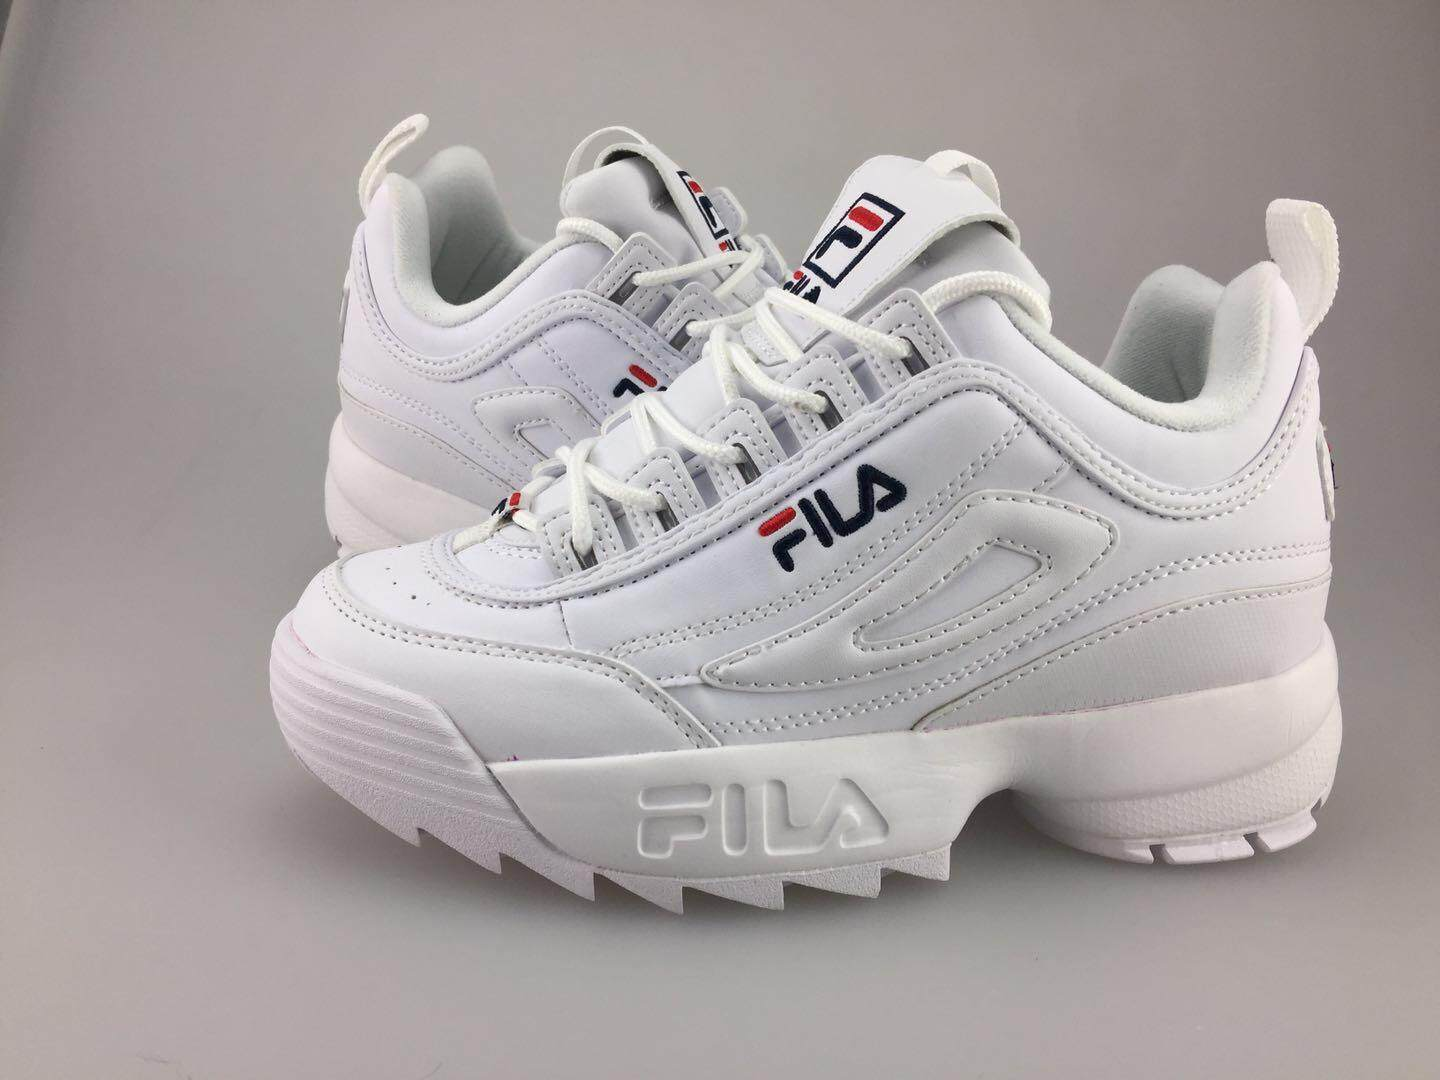 Popular Fila Sportswear for the Best Prices in Malaysia 6e8c0b5c3d